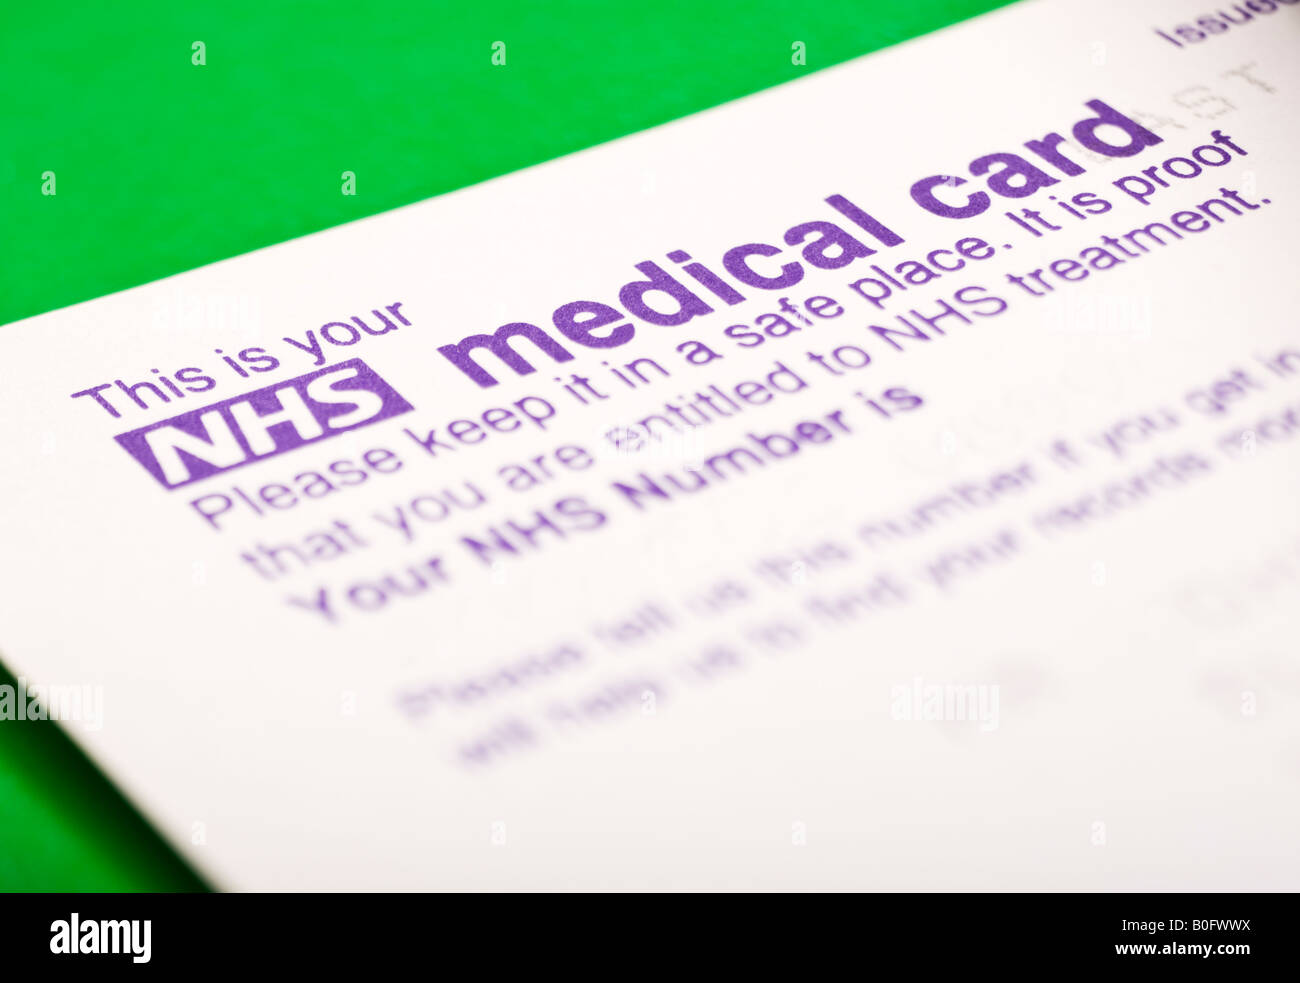 UK NHS Number Medical Card - Stock Image